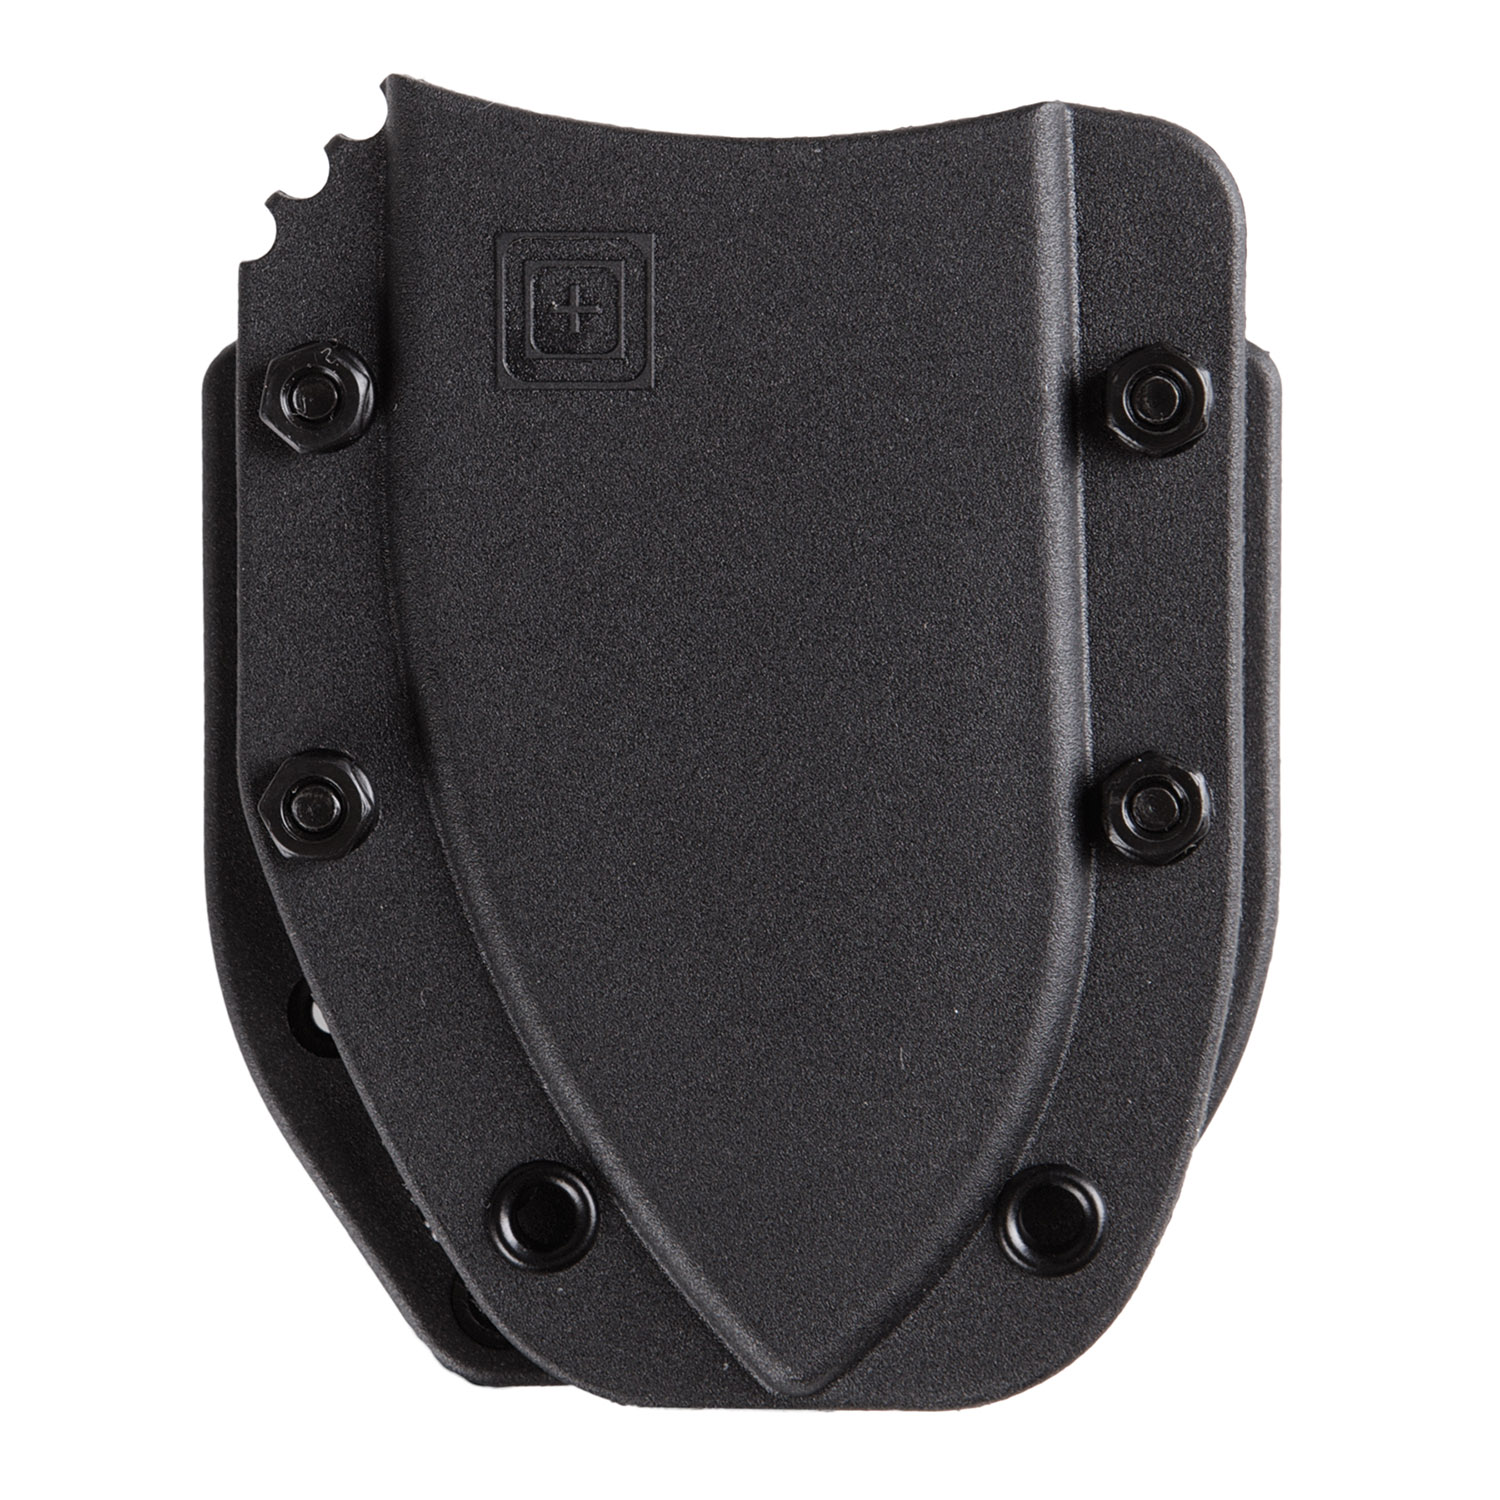 5.11 Tactical UltraSheath Upgrade Kit